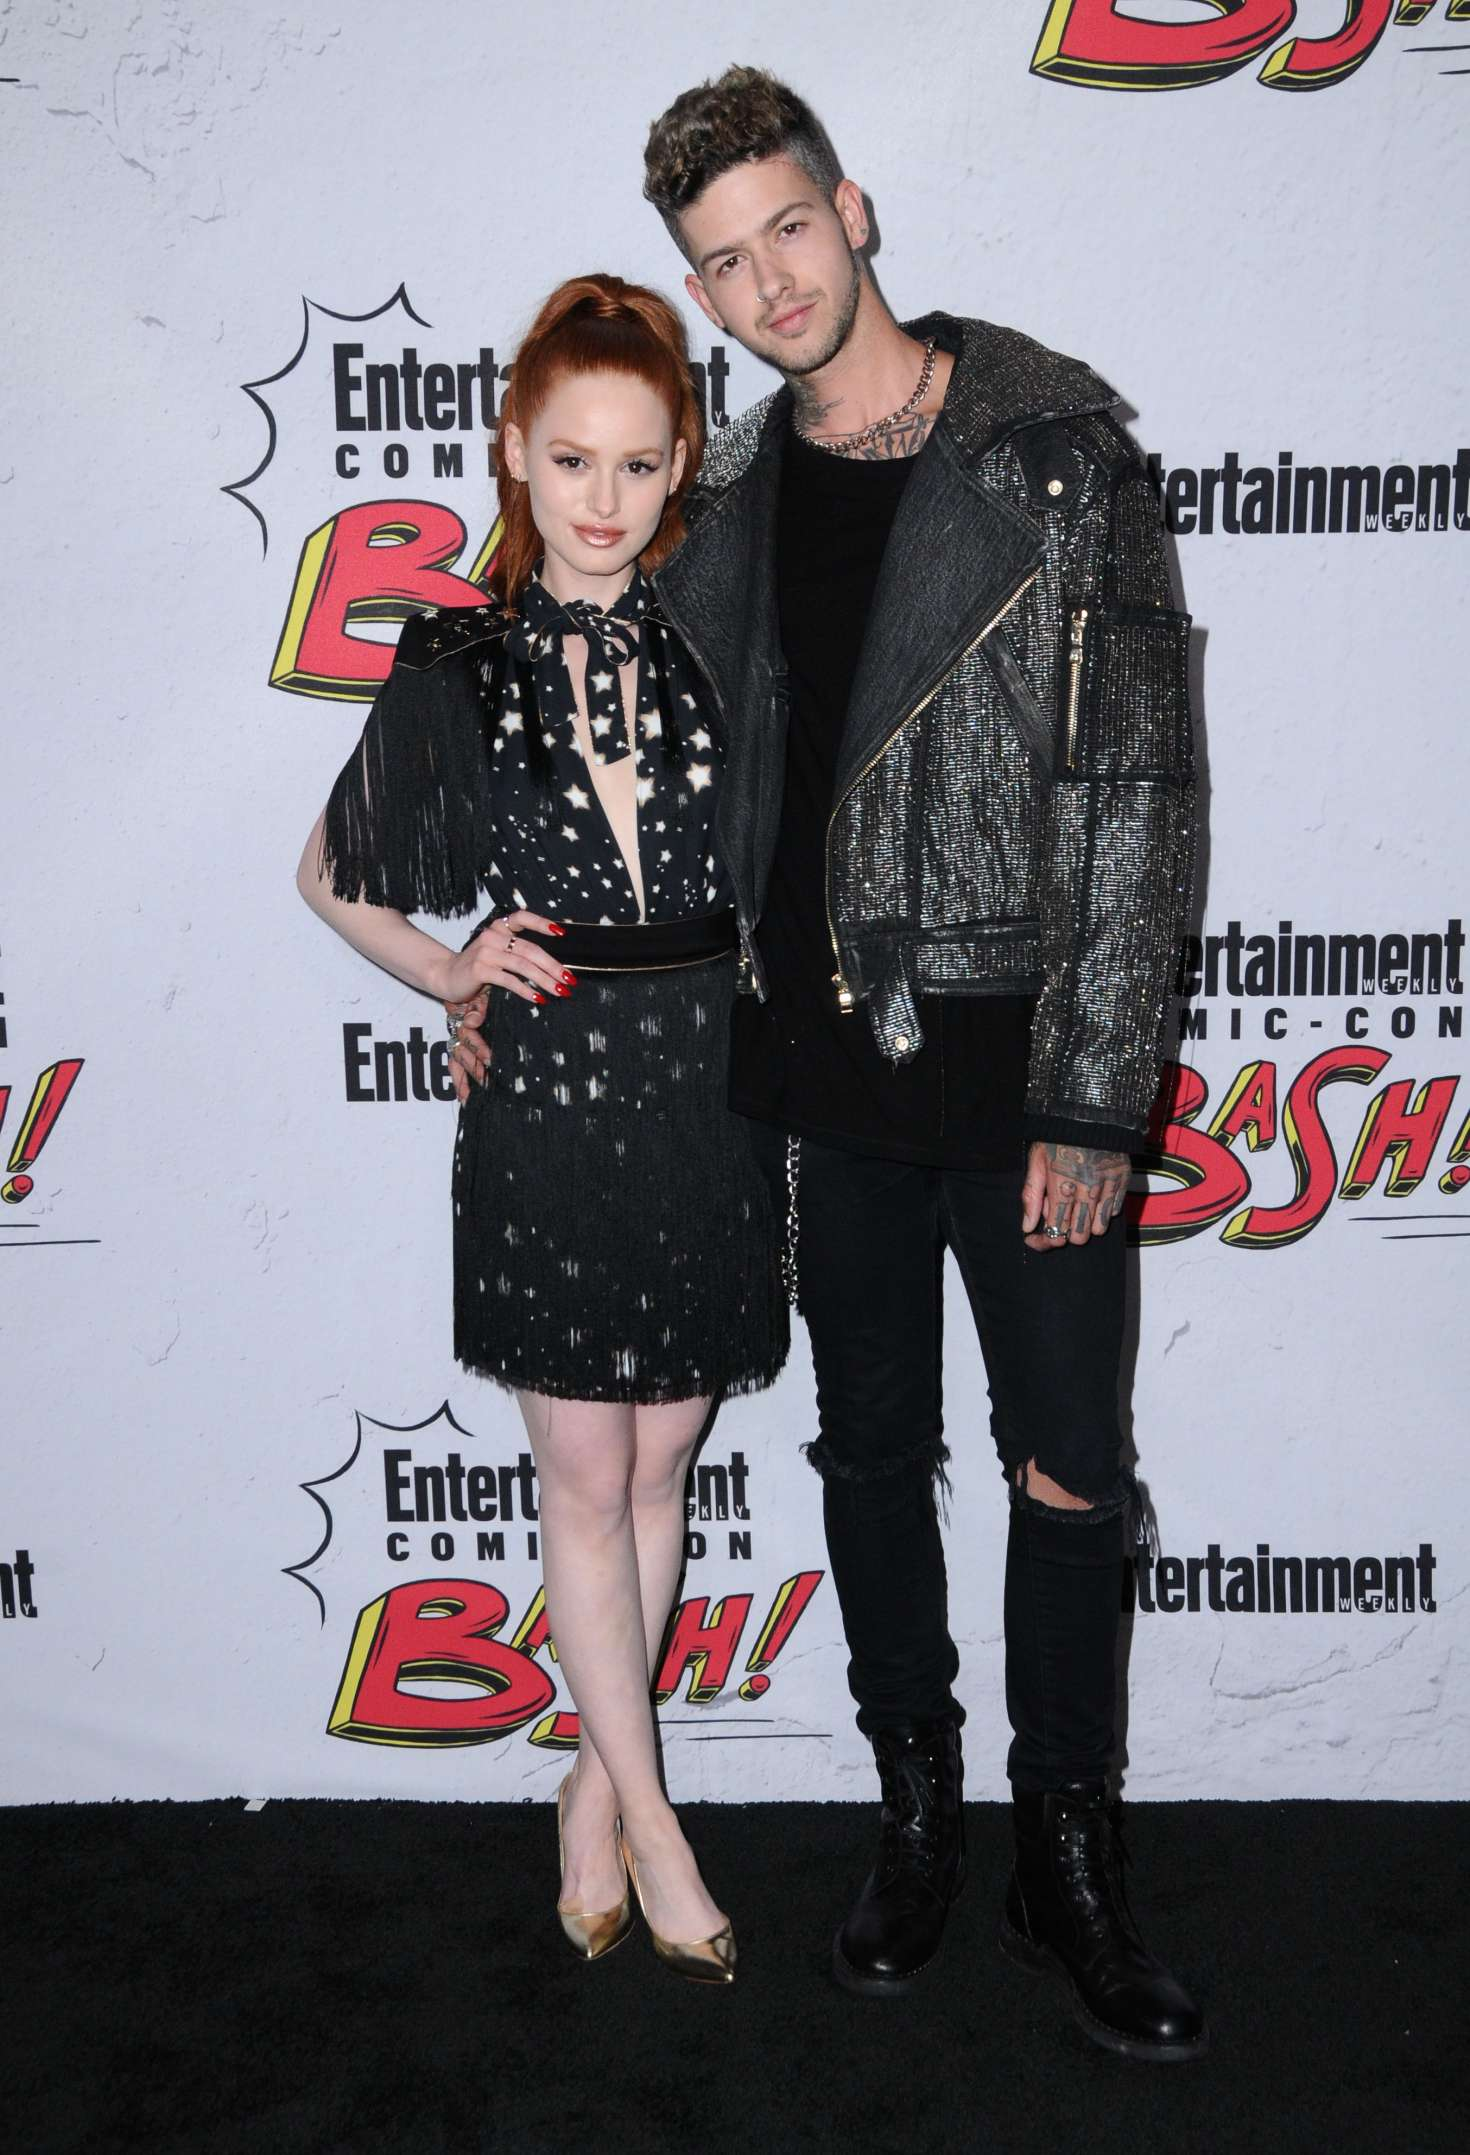 Madelaine Petsch 2017 : Madelaine Petsch: Entertainment Weekly Party at 2017 Comic-Con -02